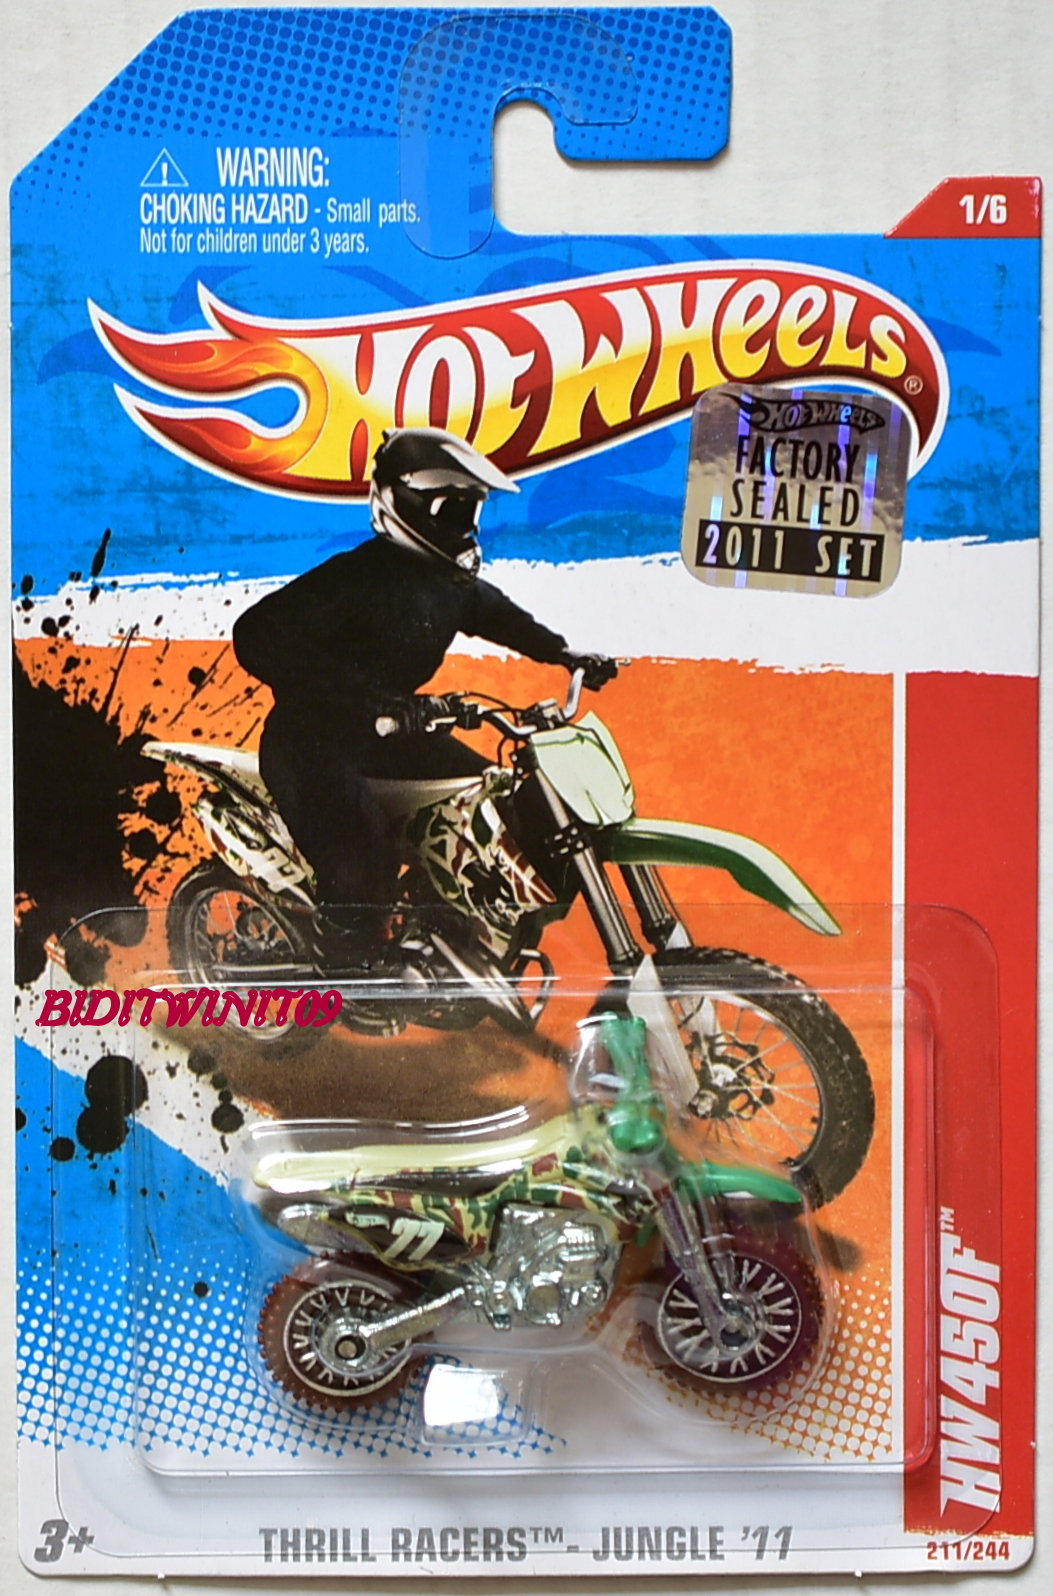 HOT WHEELS 2011 THRILL RACERS - JUNGLE HW450F #1/6 FACTORY SEALED